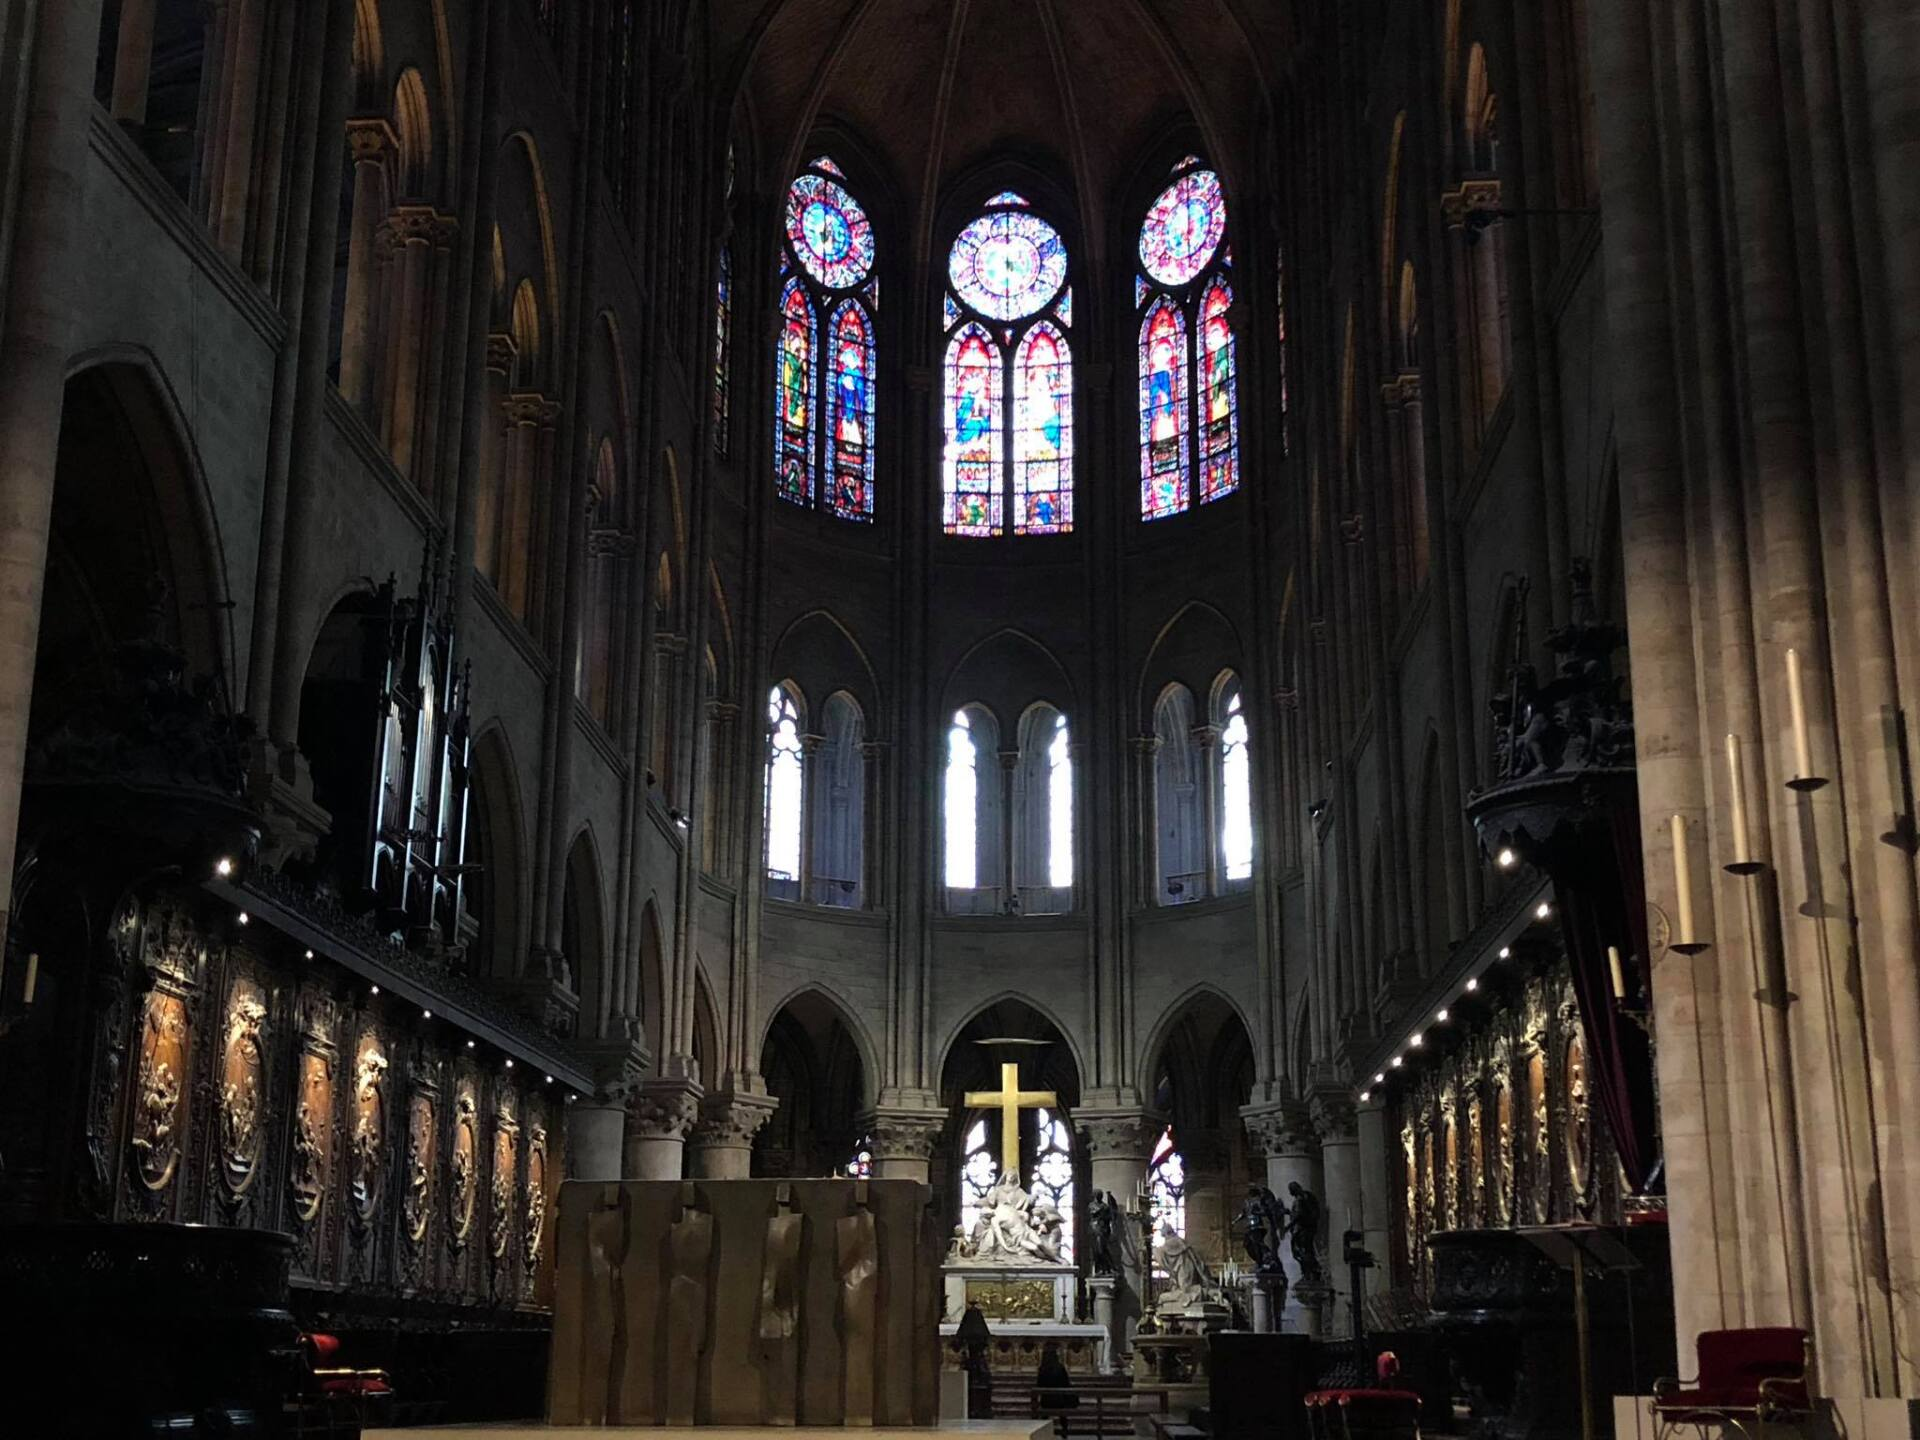 Photos Show Beautiful Interior Of Iconic Notre Dame Cathedral